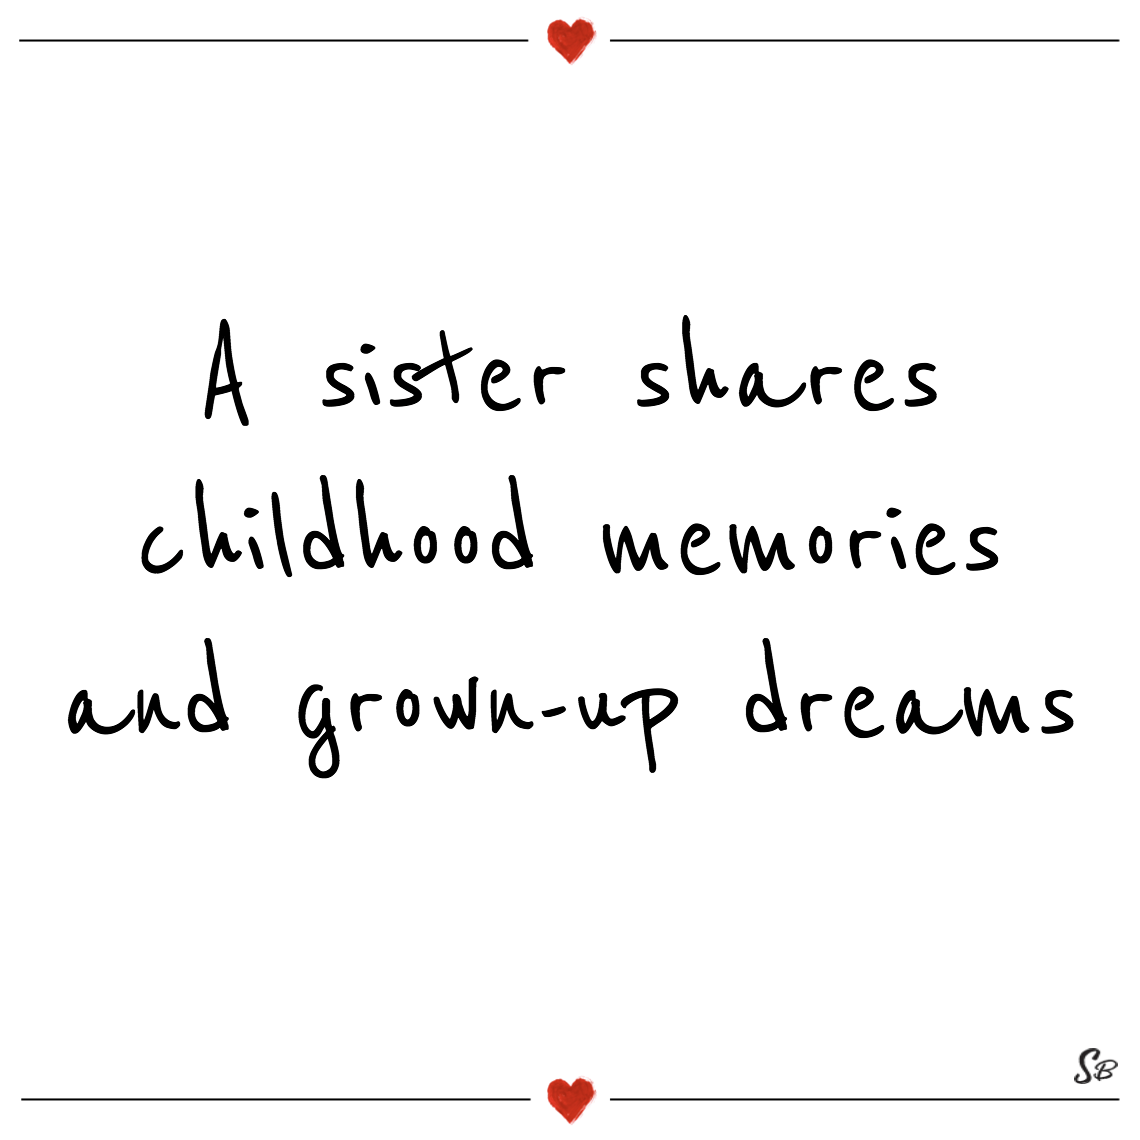 A sister shares childhood memories and grown up dreams